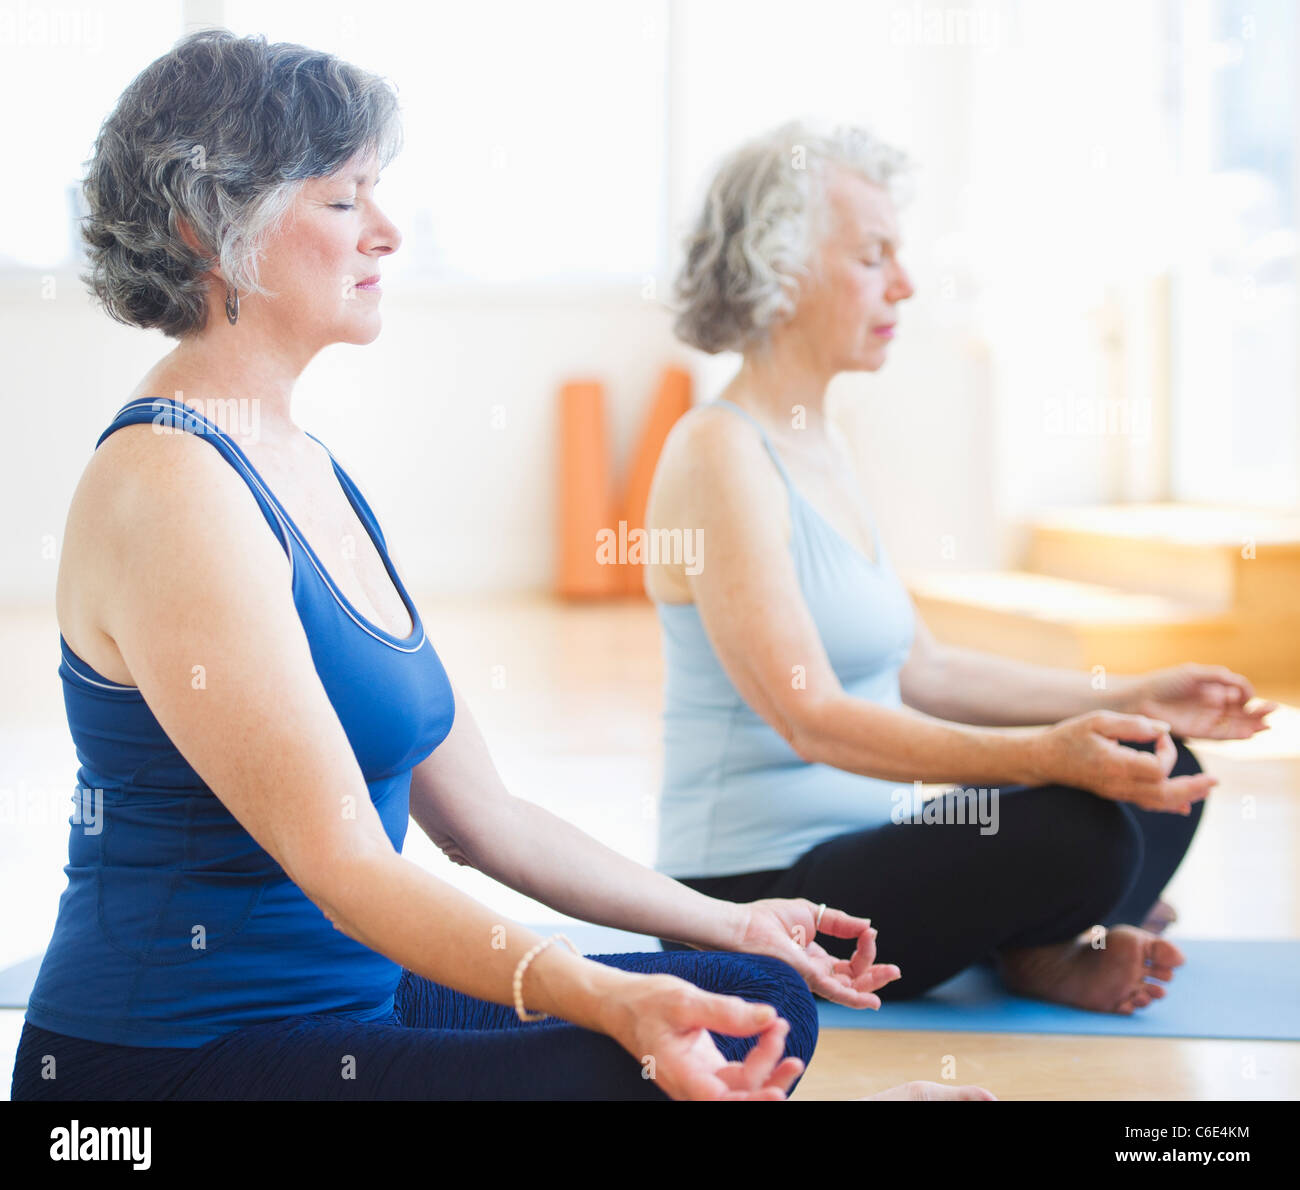 USA, New Jersey, Jersey City, Two senior women practicing yoga Stock Foto